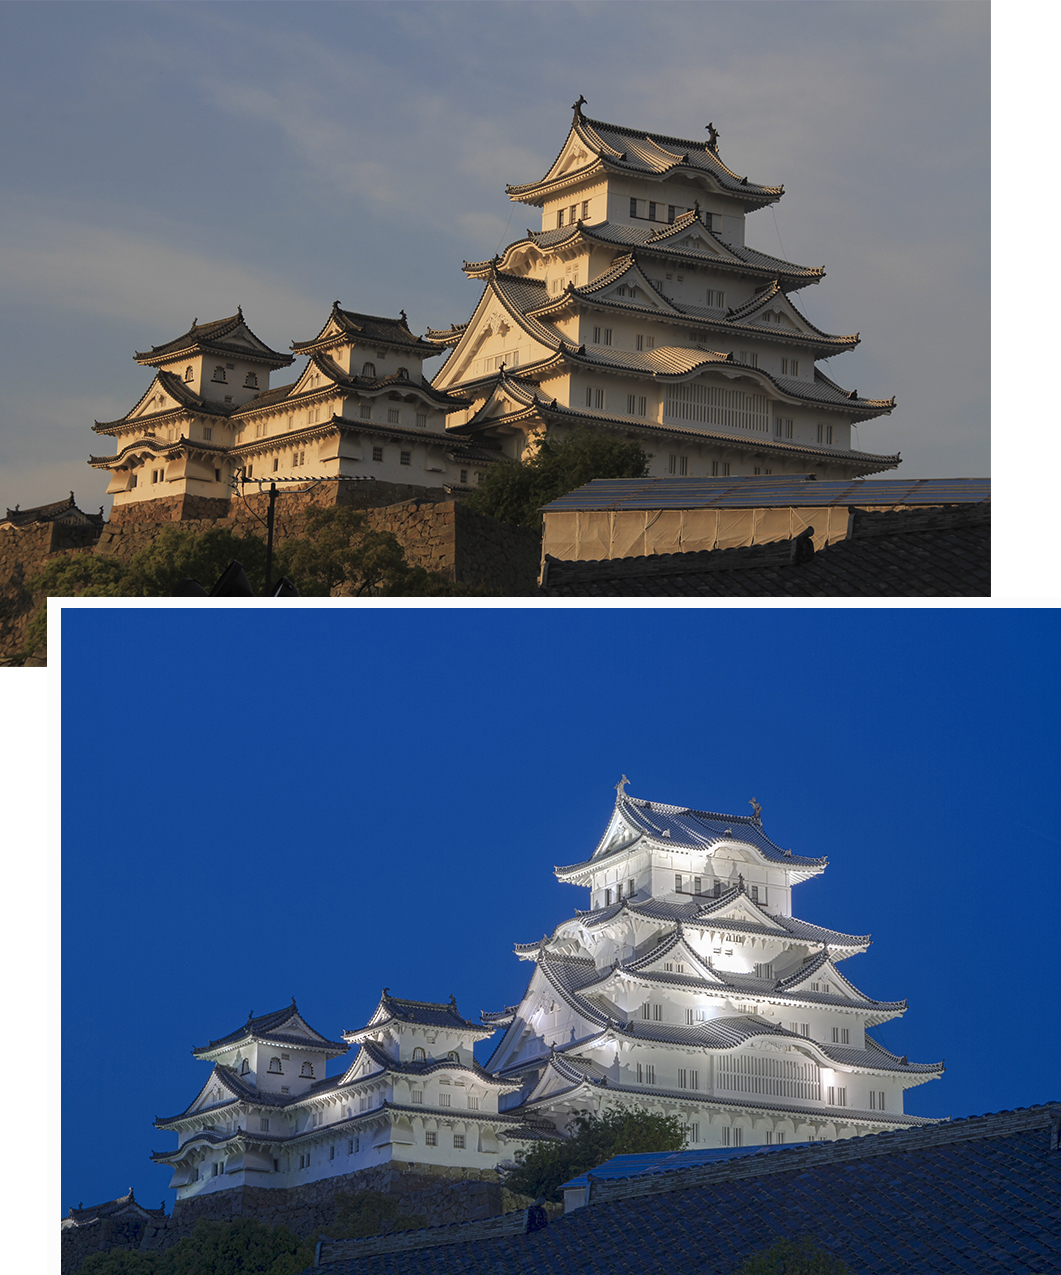 Himeji Castle (Day and Night)